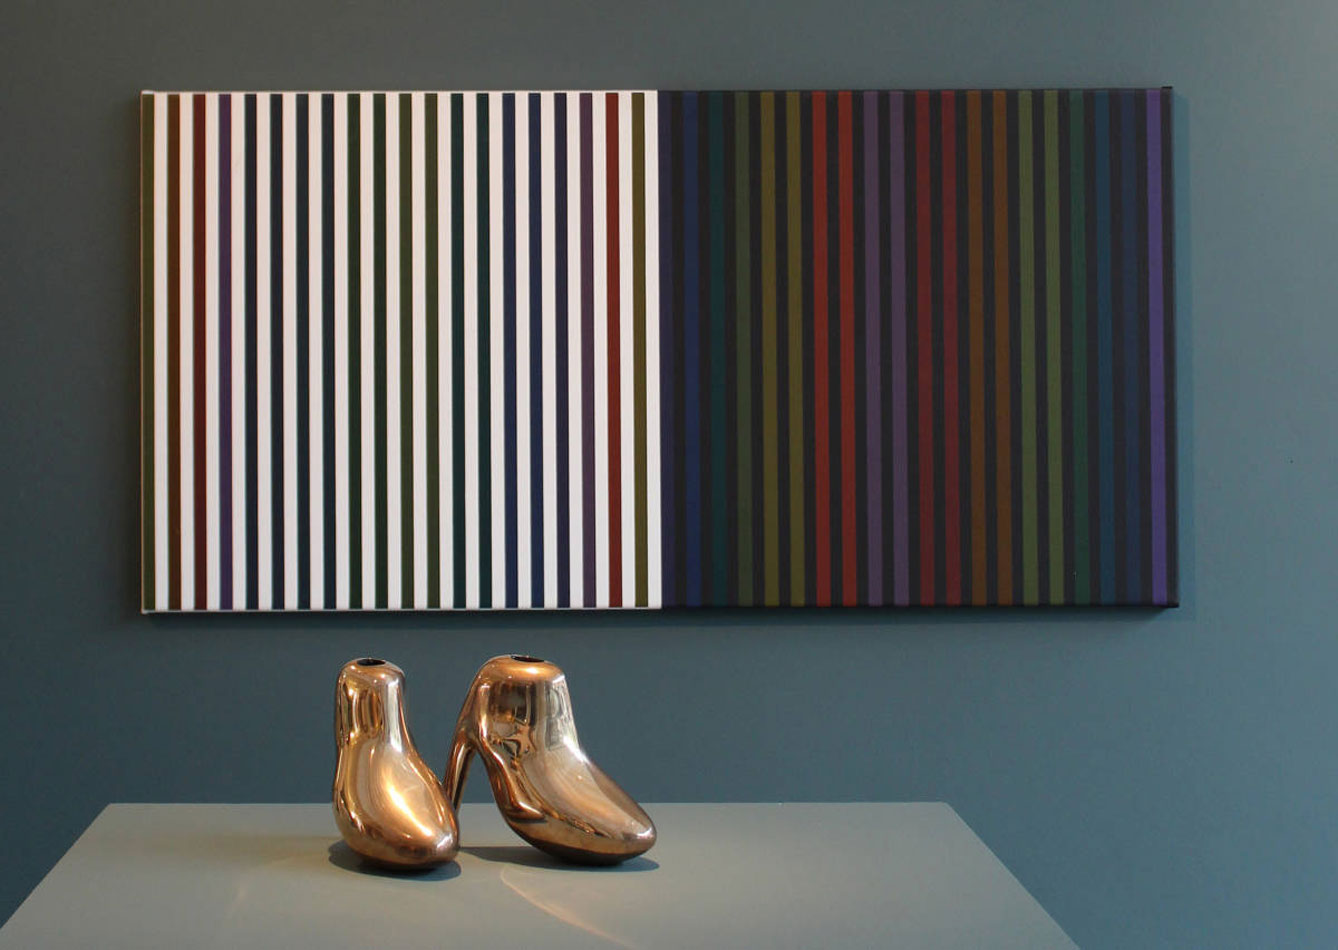 Untitled, 165, 2001 - Copyrights Ditty Ketting